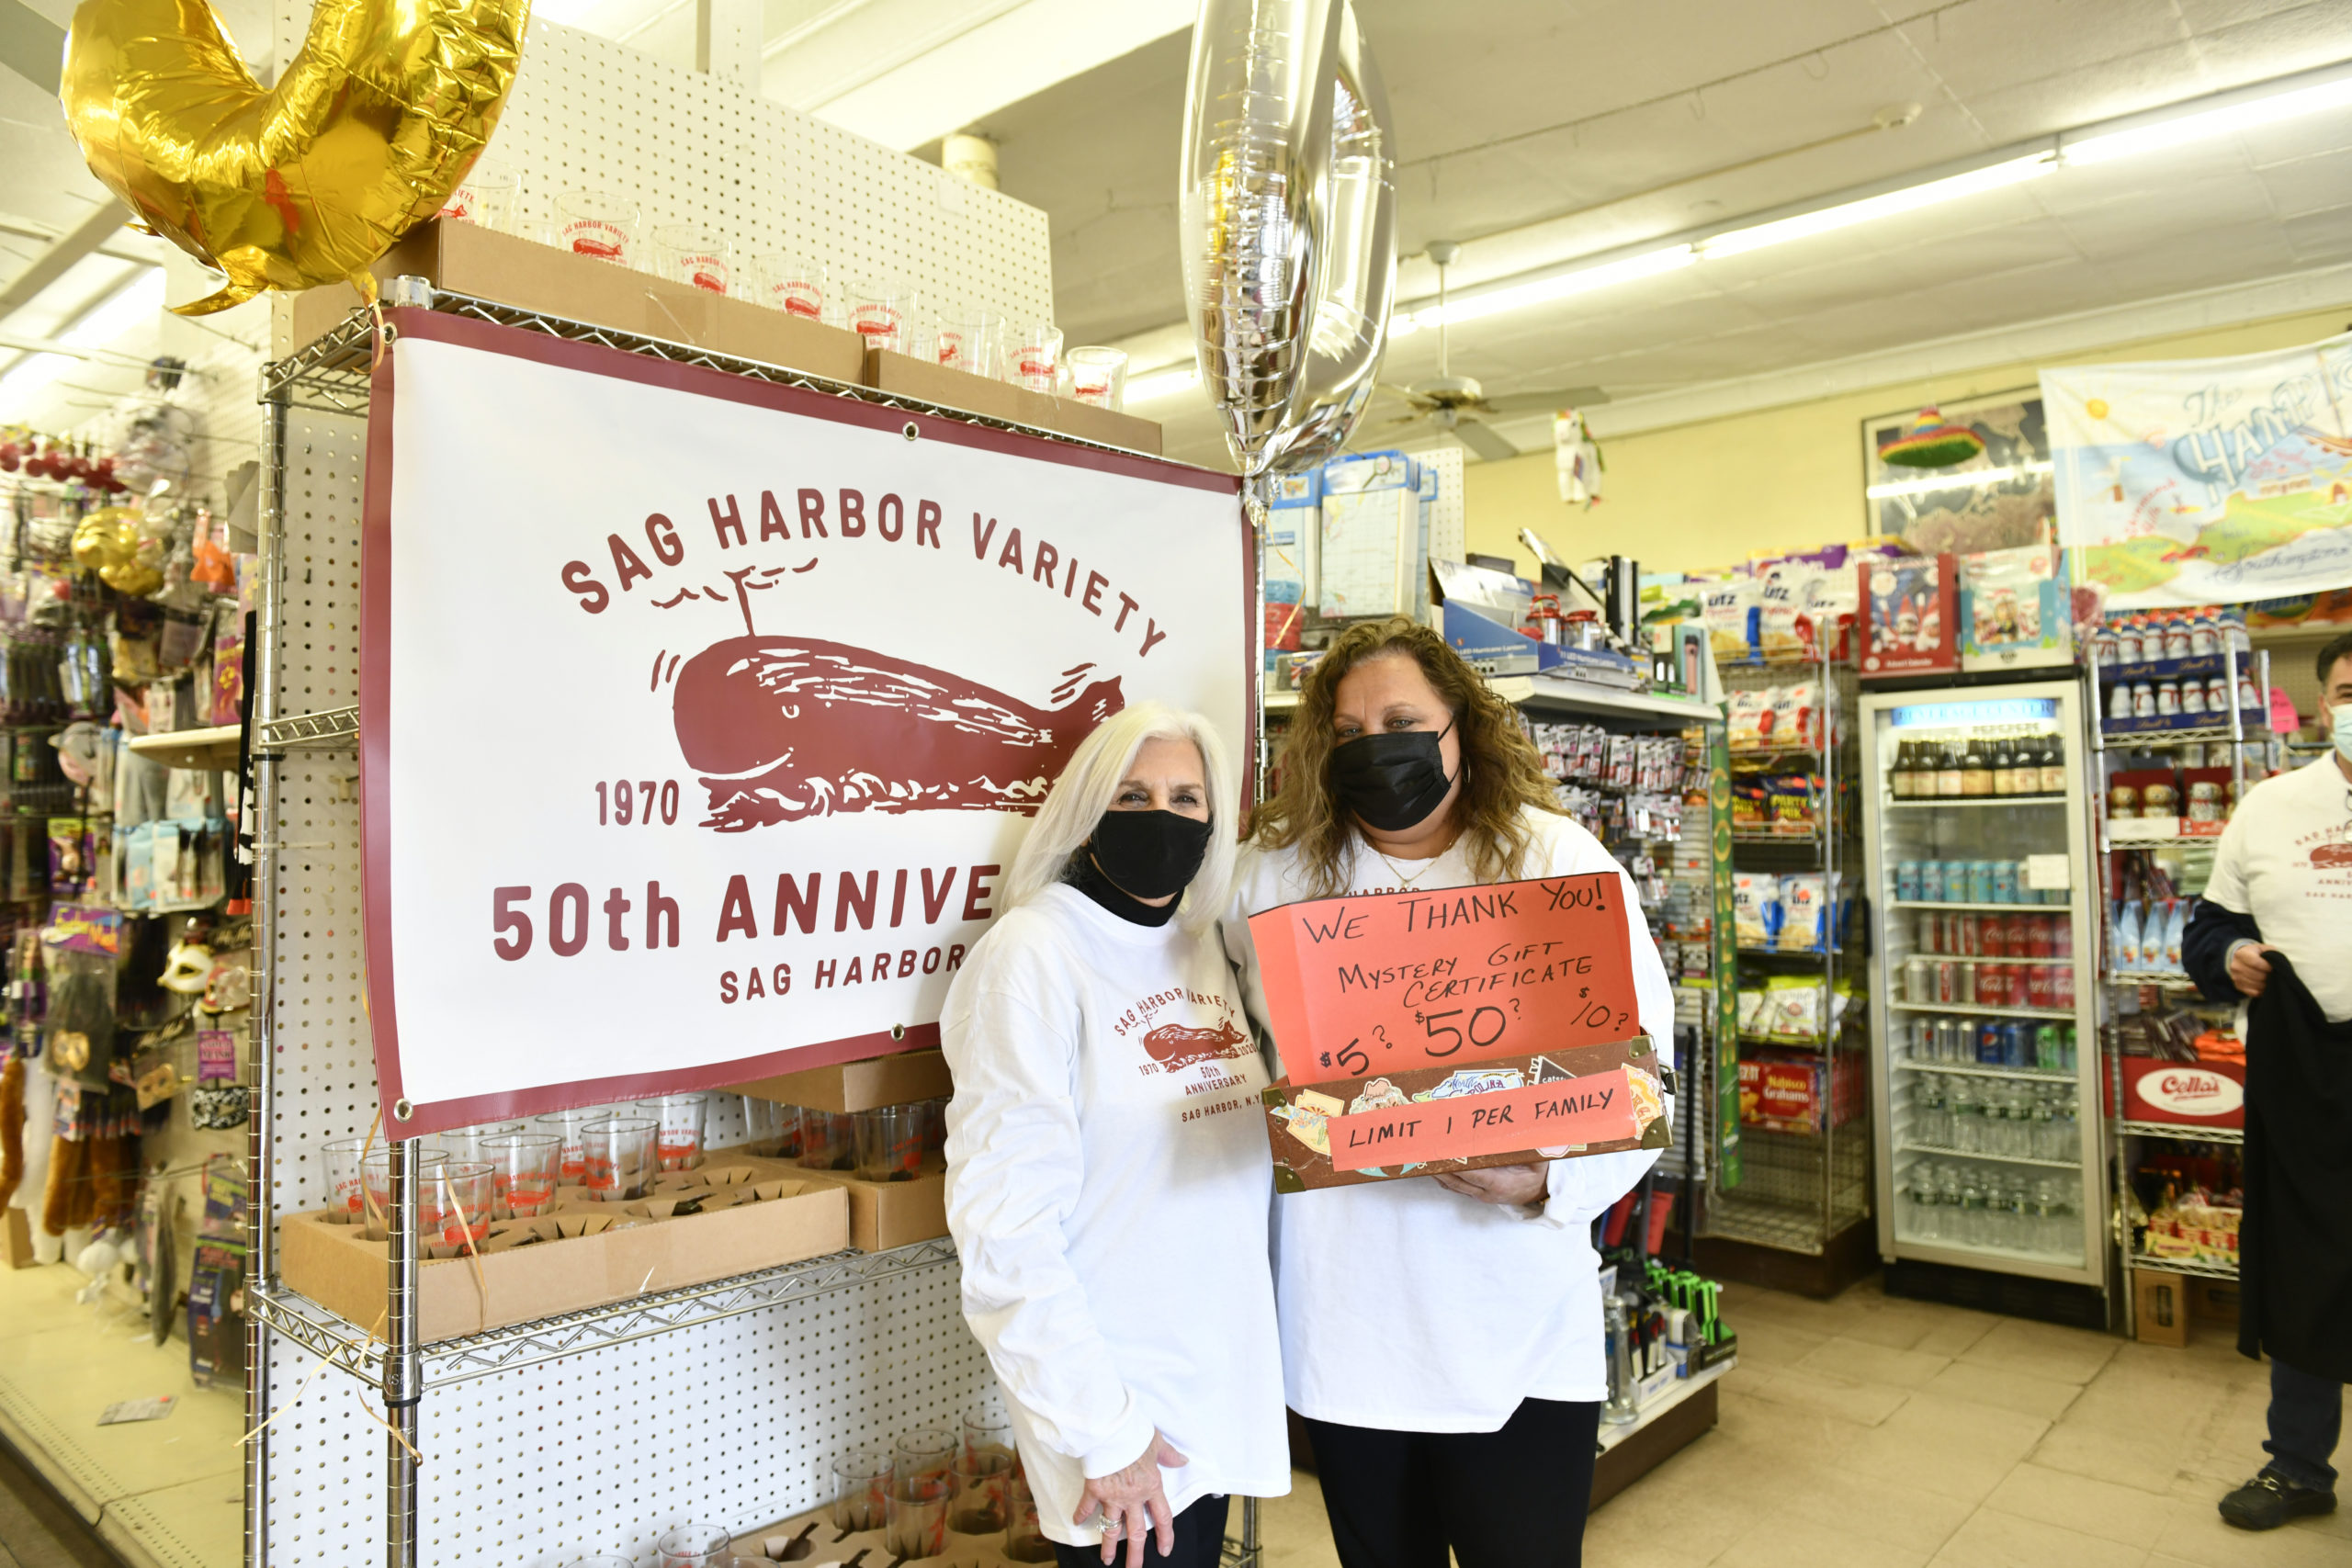 Roseann Bucking and Lisa Field greet customers on Saturday at the Sag Harbor Variety Store's 50th anniversary celebration.    DANA SHAW